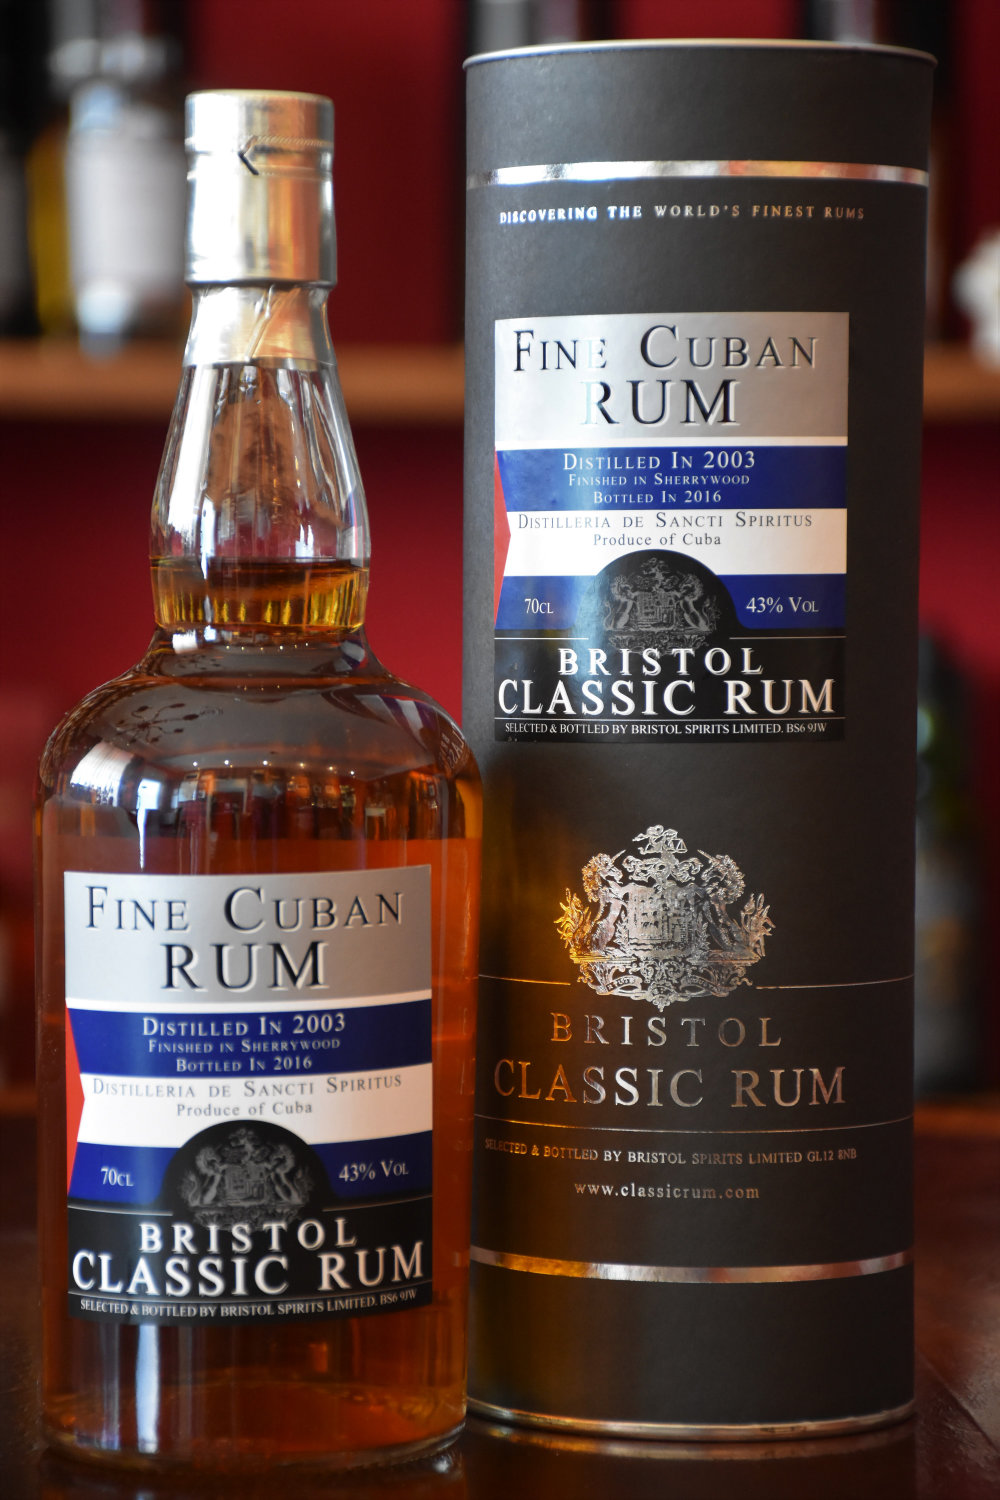 Bristol Fine Cuban Rum 2003/2016 Sherry Finish, 43% Alc.Vol., Bristol Spirits Ltd.